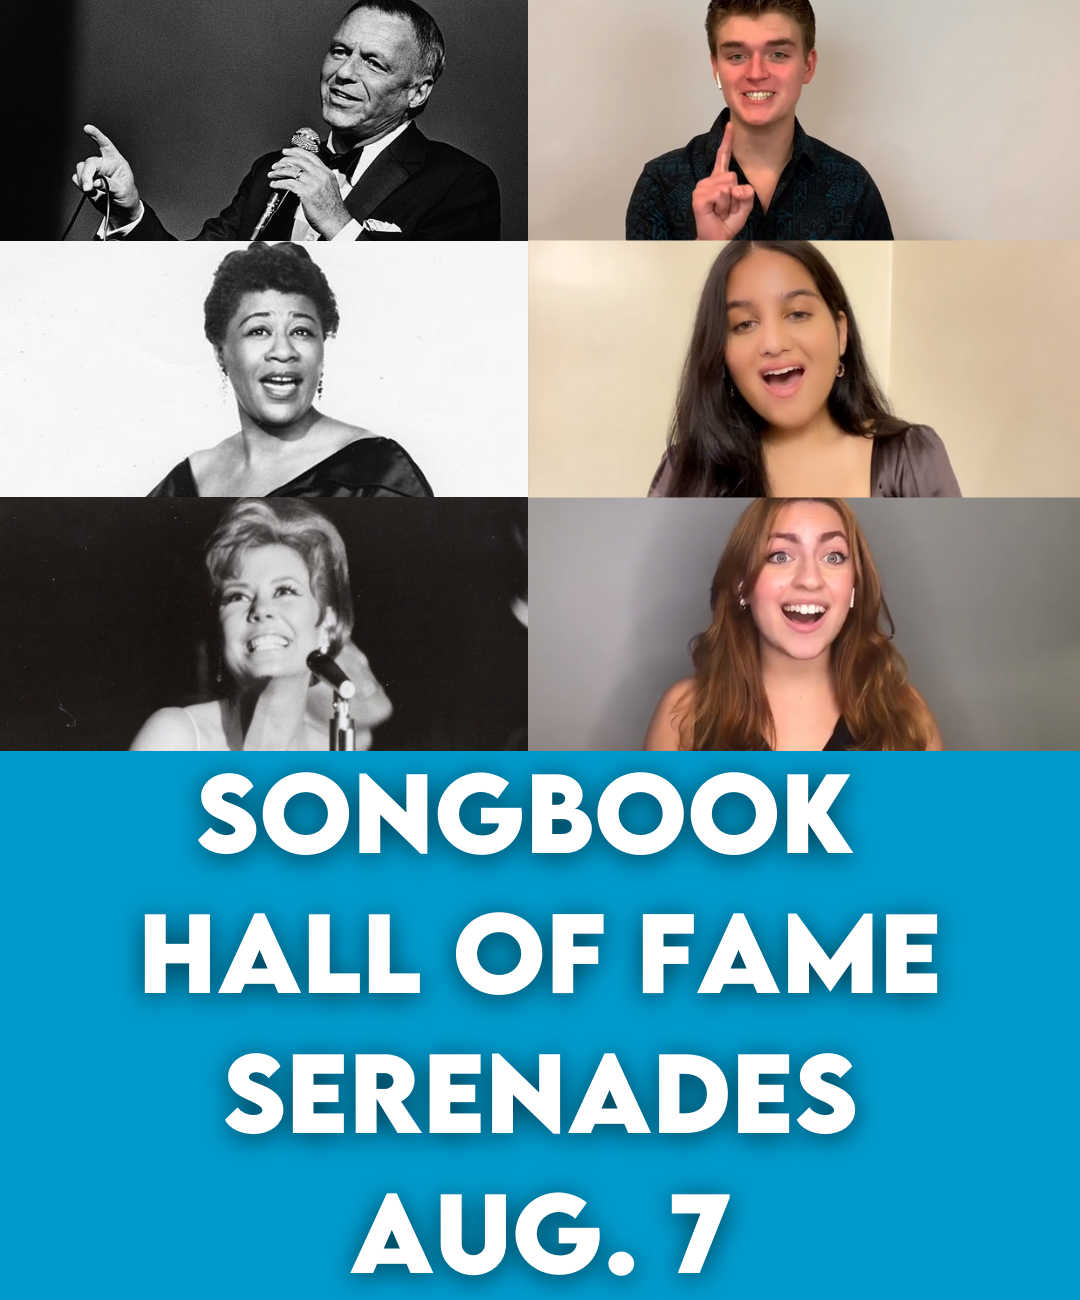 Songbook Hall of Fame Serenades Aug. 7